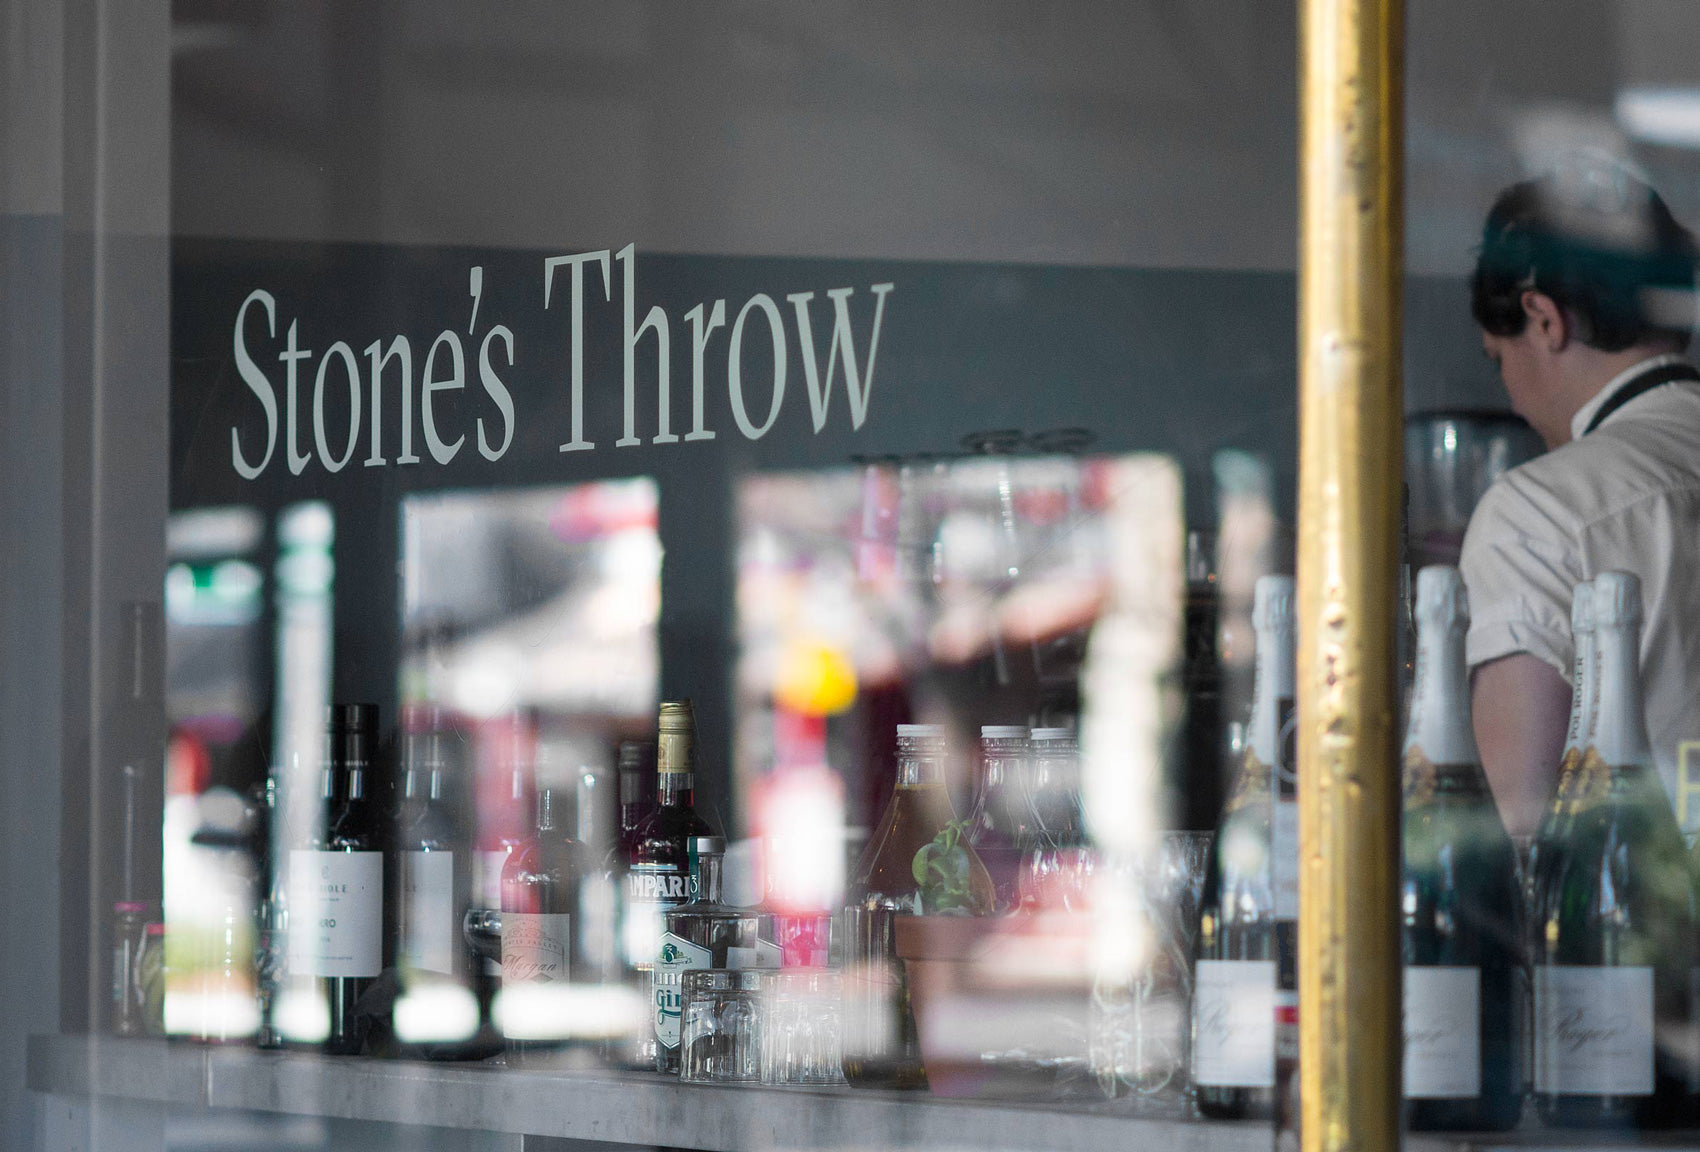 Stones throw signage design